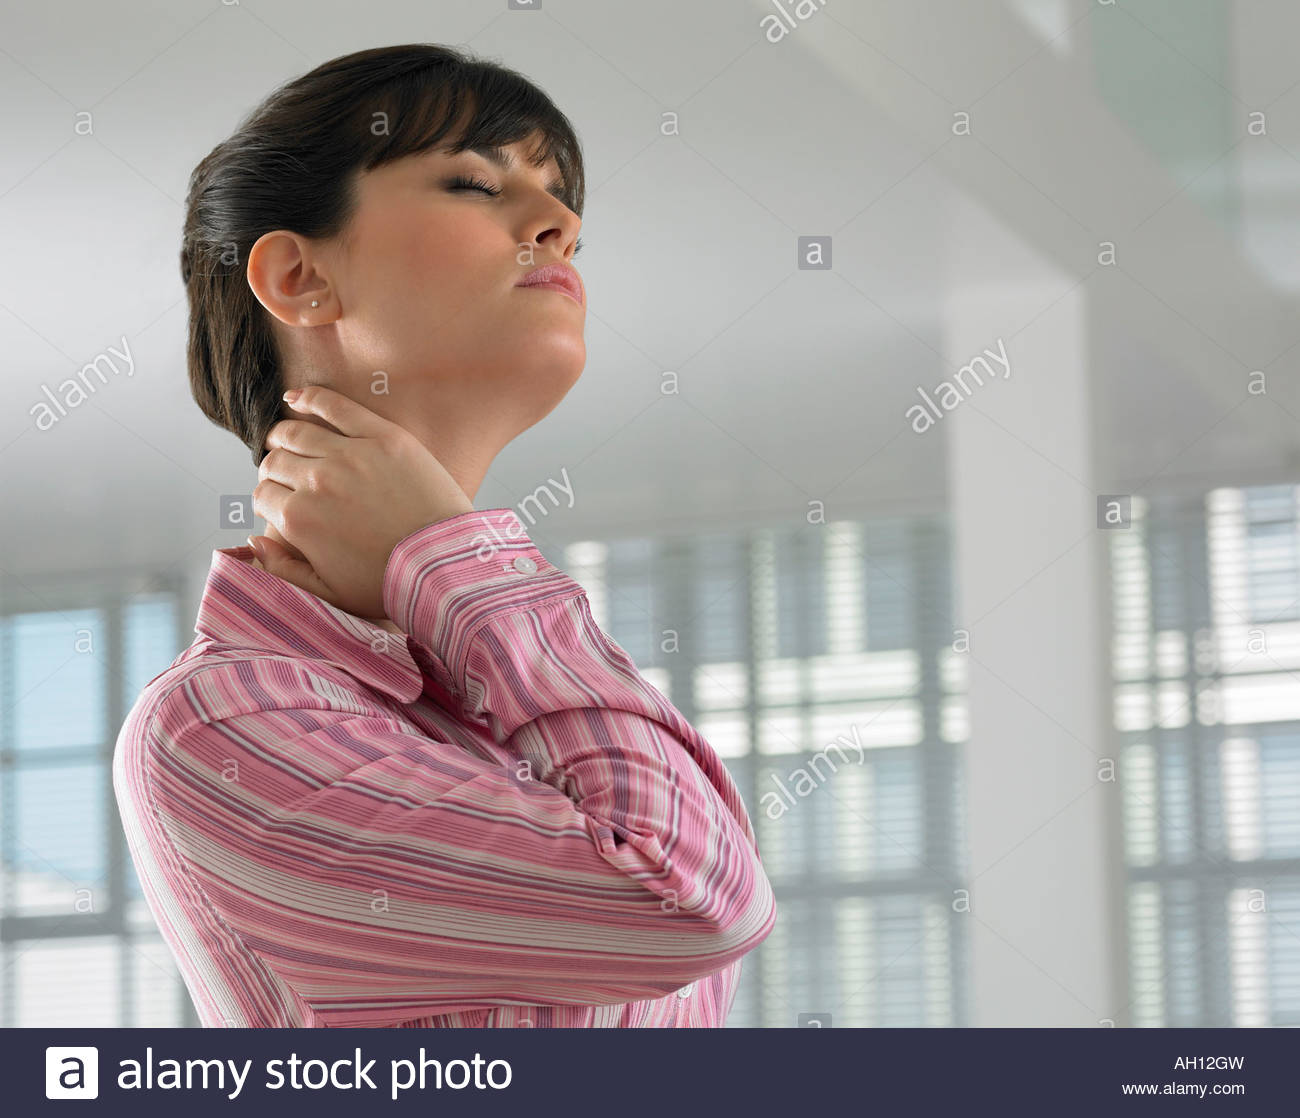 A woman dealing with stress - Stock Image